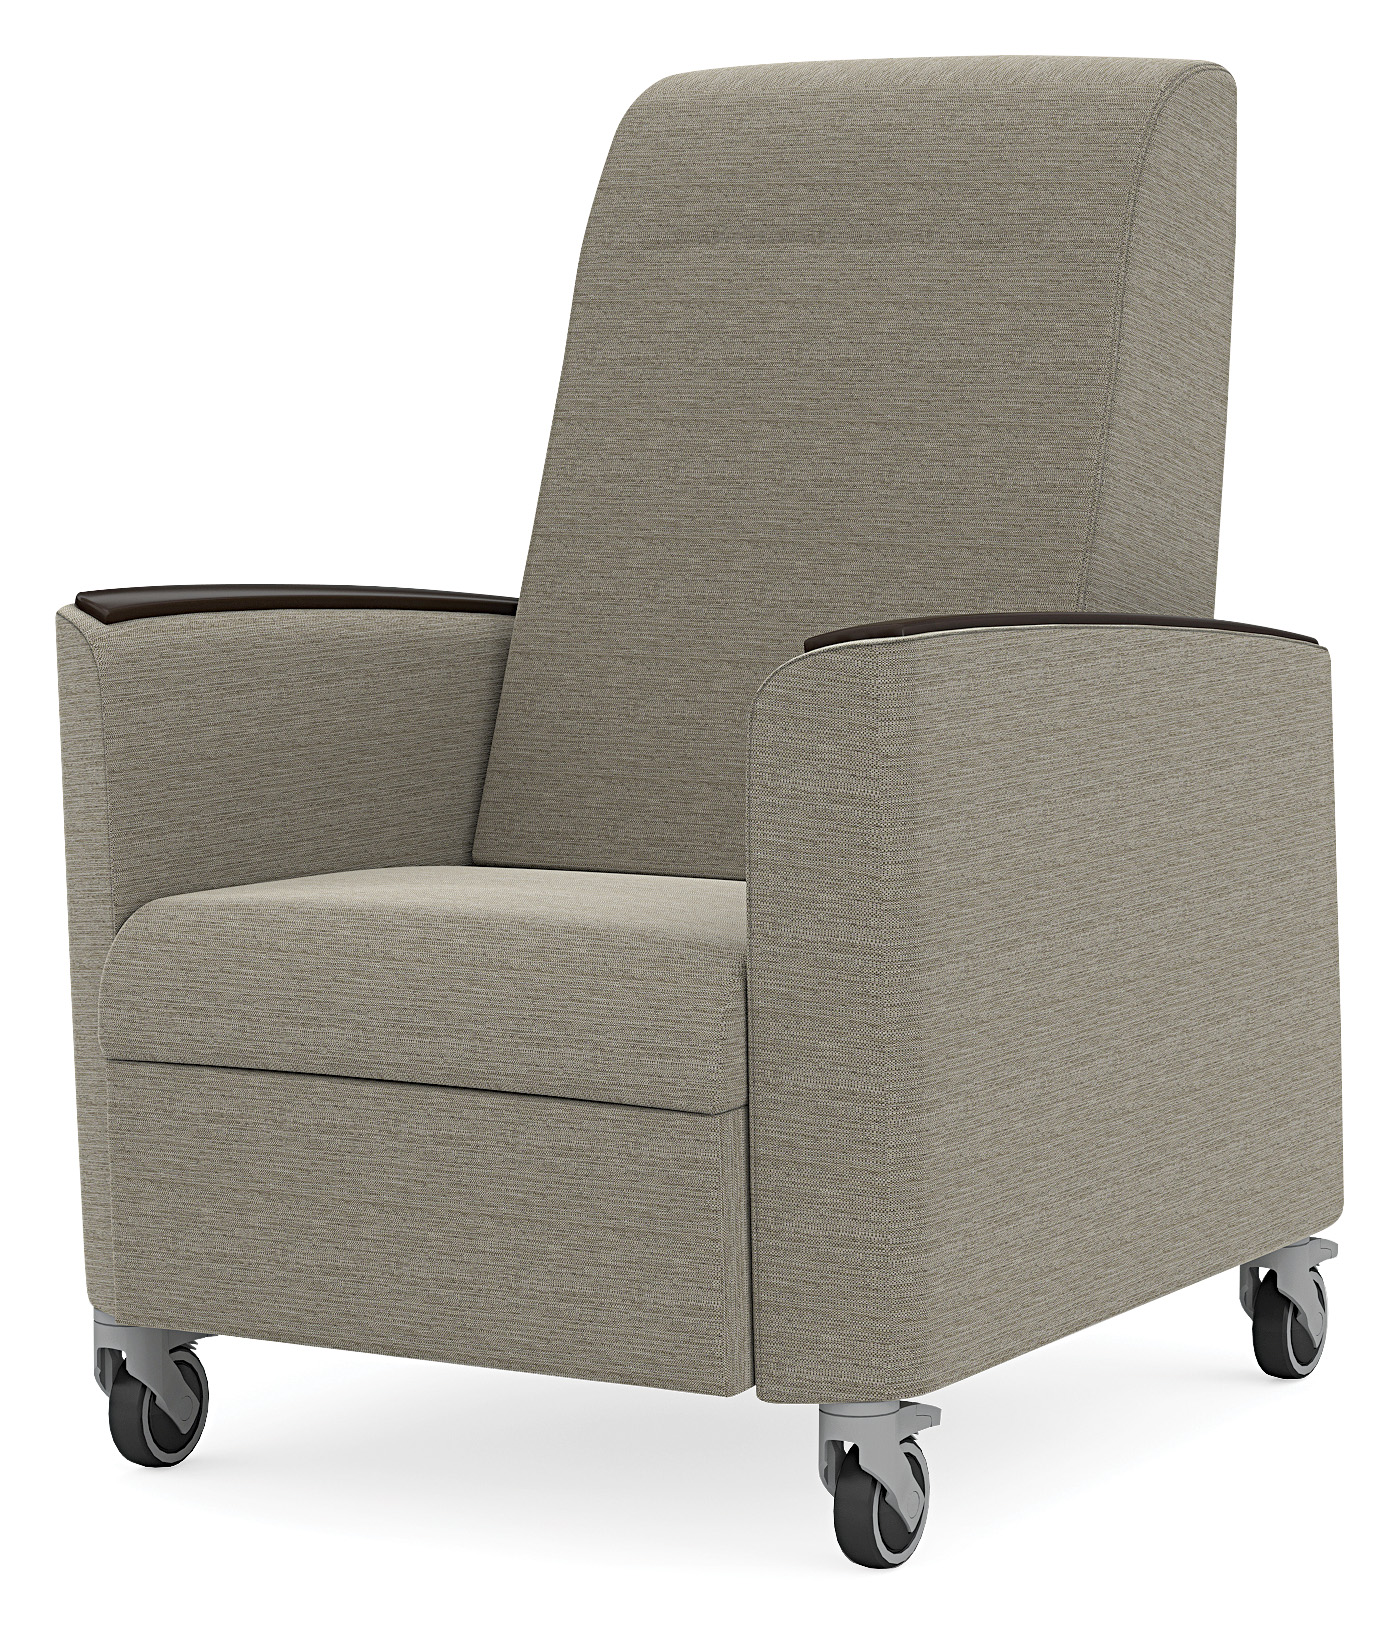 Recliners, Gliders and Rockers